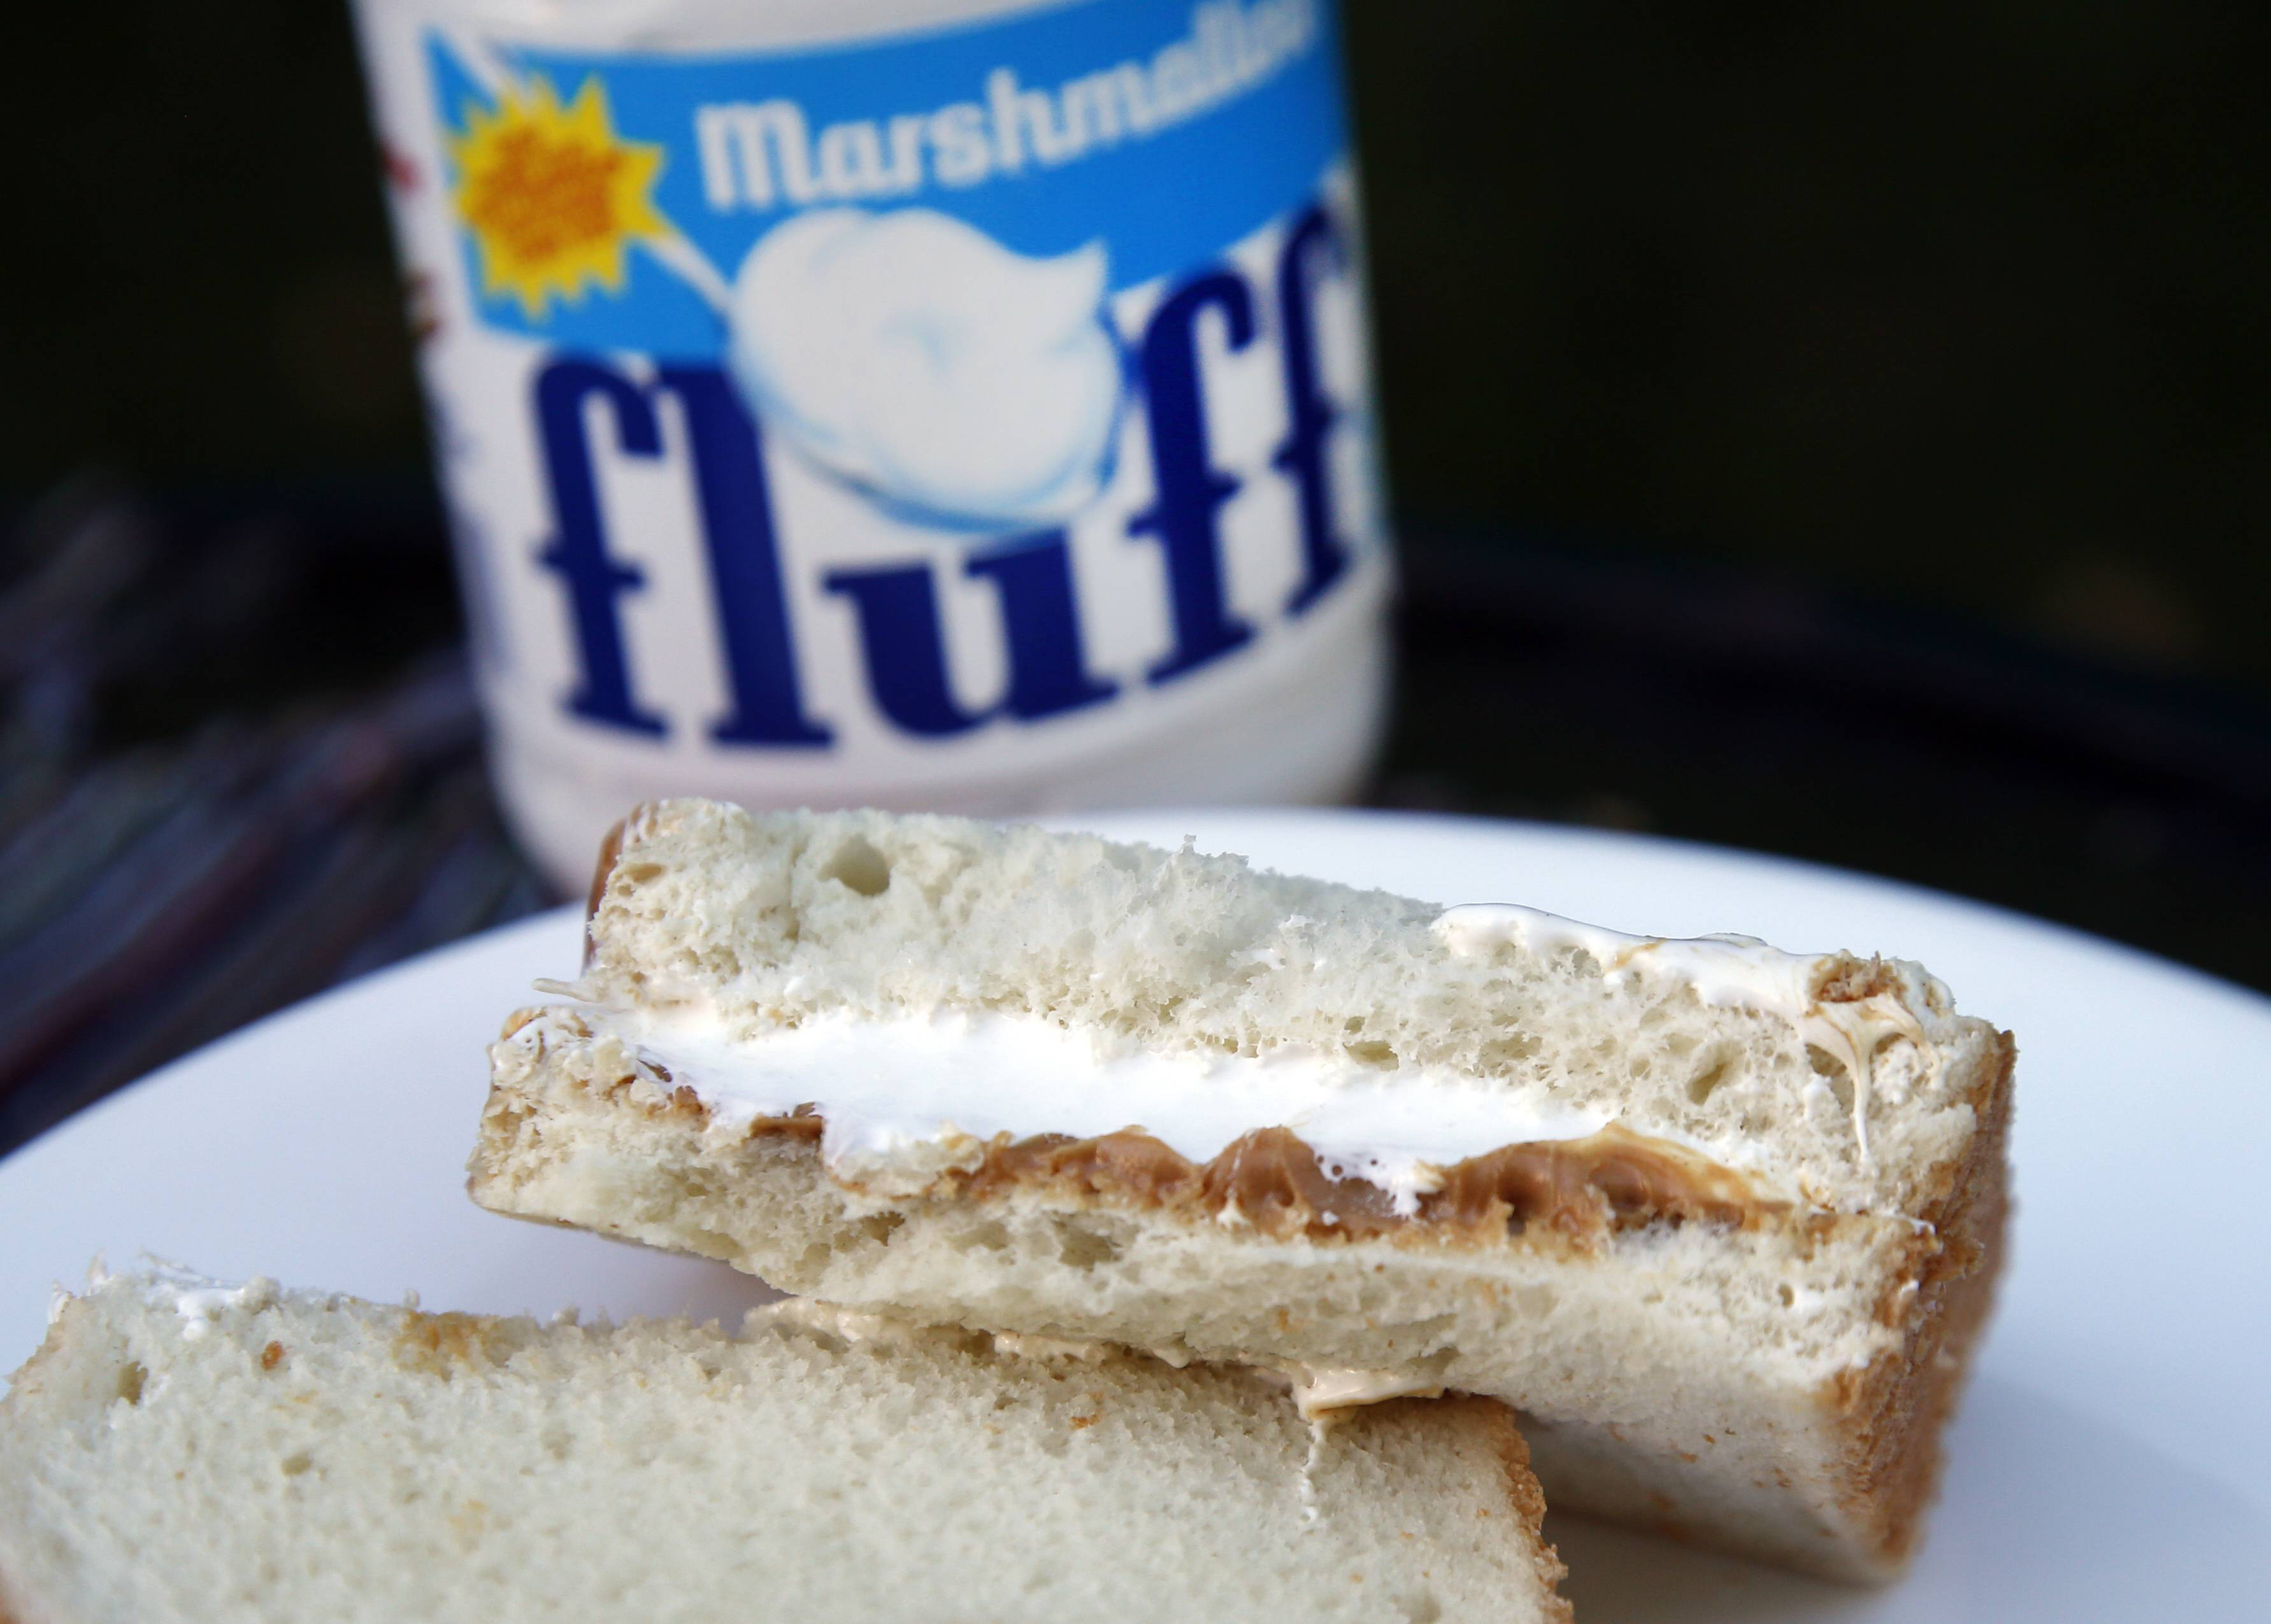 A jar of Marshmallow Fluff leads to a Fluffernutter sandwich. The marshmallow concoction that's been smeared on a century's worth of sandwiches has inspired a festival and other sticky remembrances as it turns 100 in 2017.